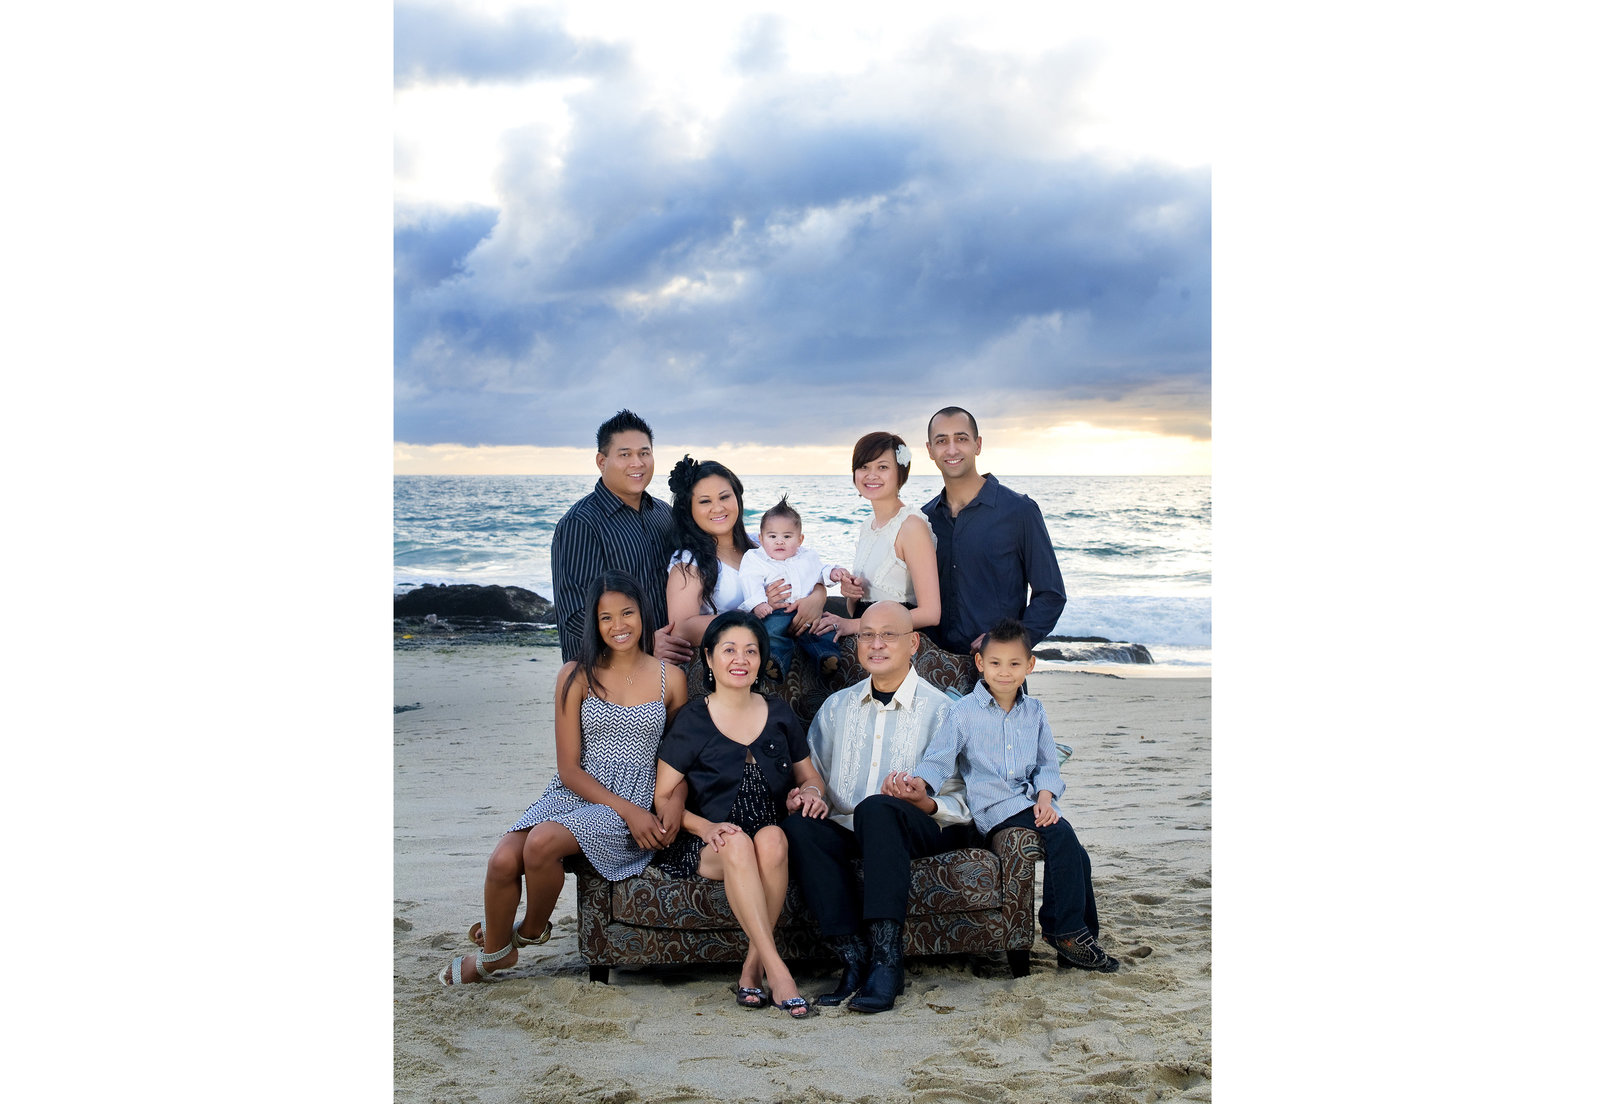 family photography at the beach by inGRACE photography